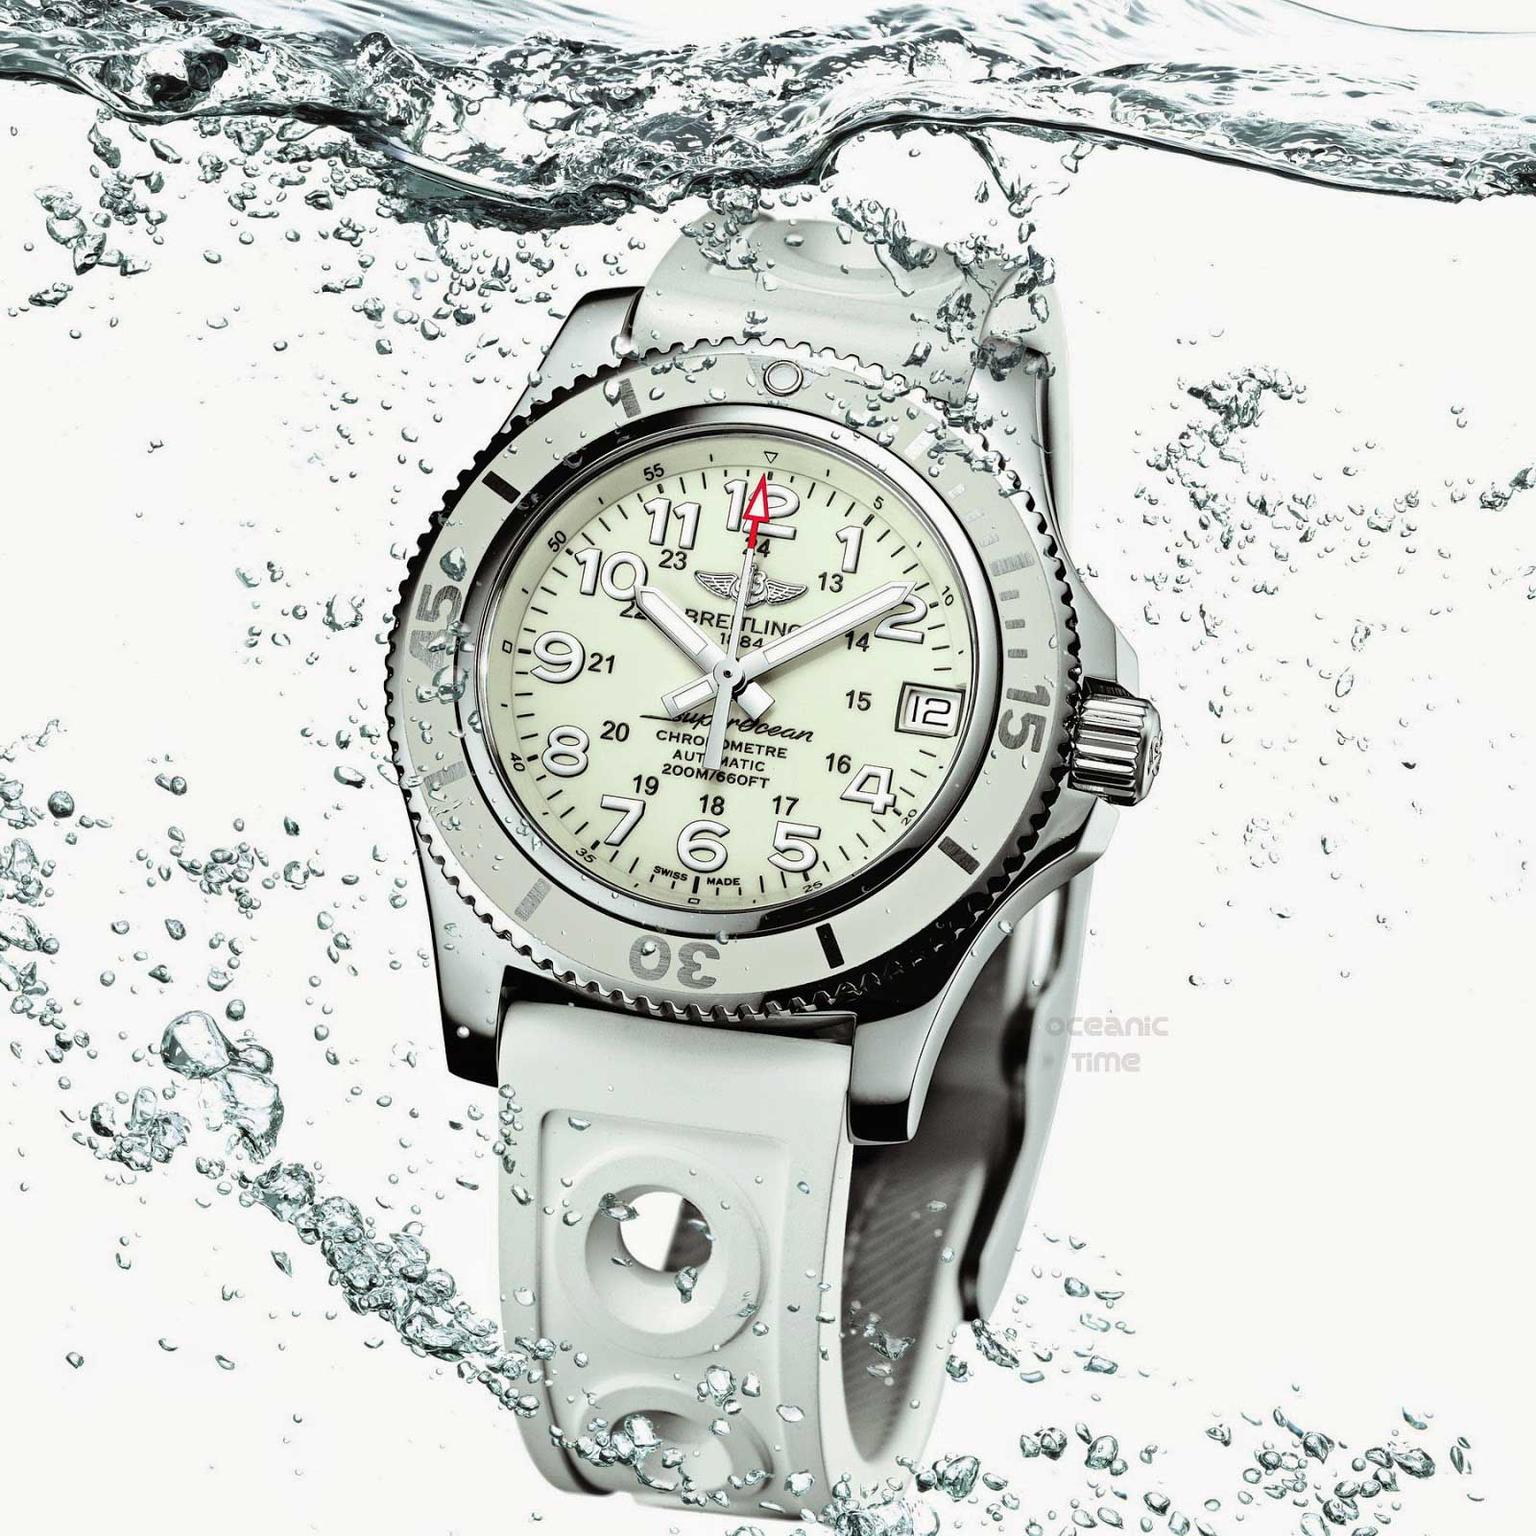 Breitling Superocean II for women